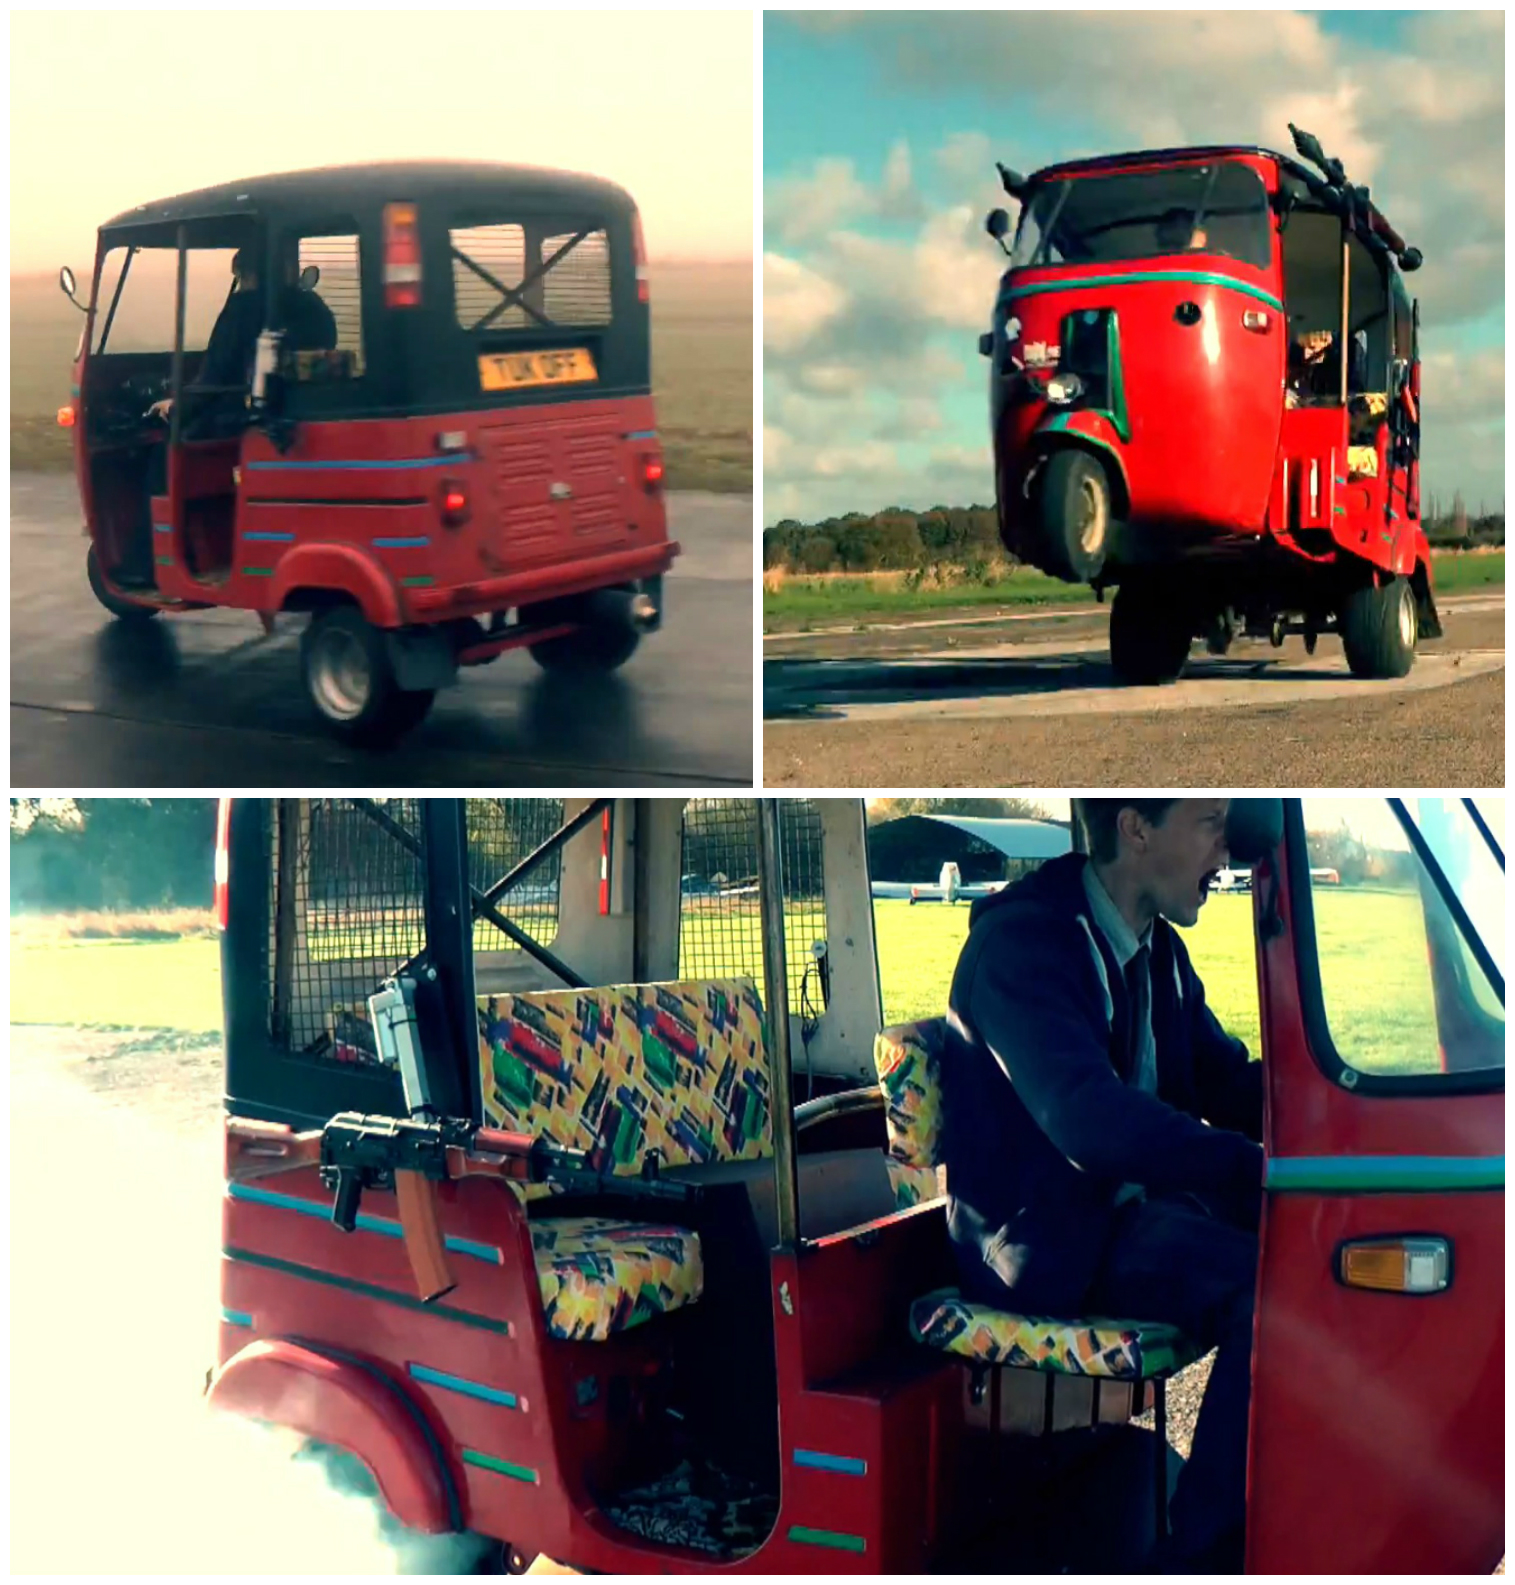 far-cry-4-inspired-tuk-tuk-drifts-with-100-hp-honda-engine-shoots-ak-47s-video-89057_1